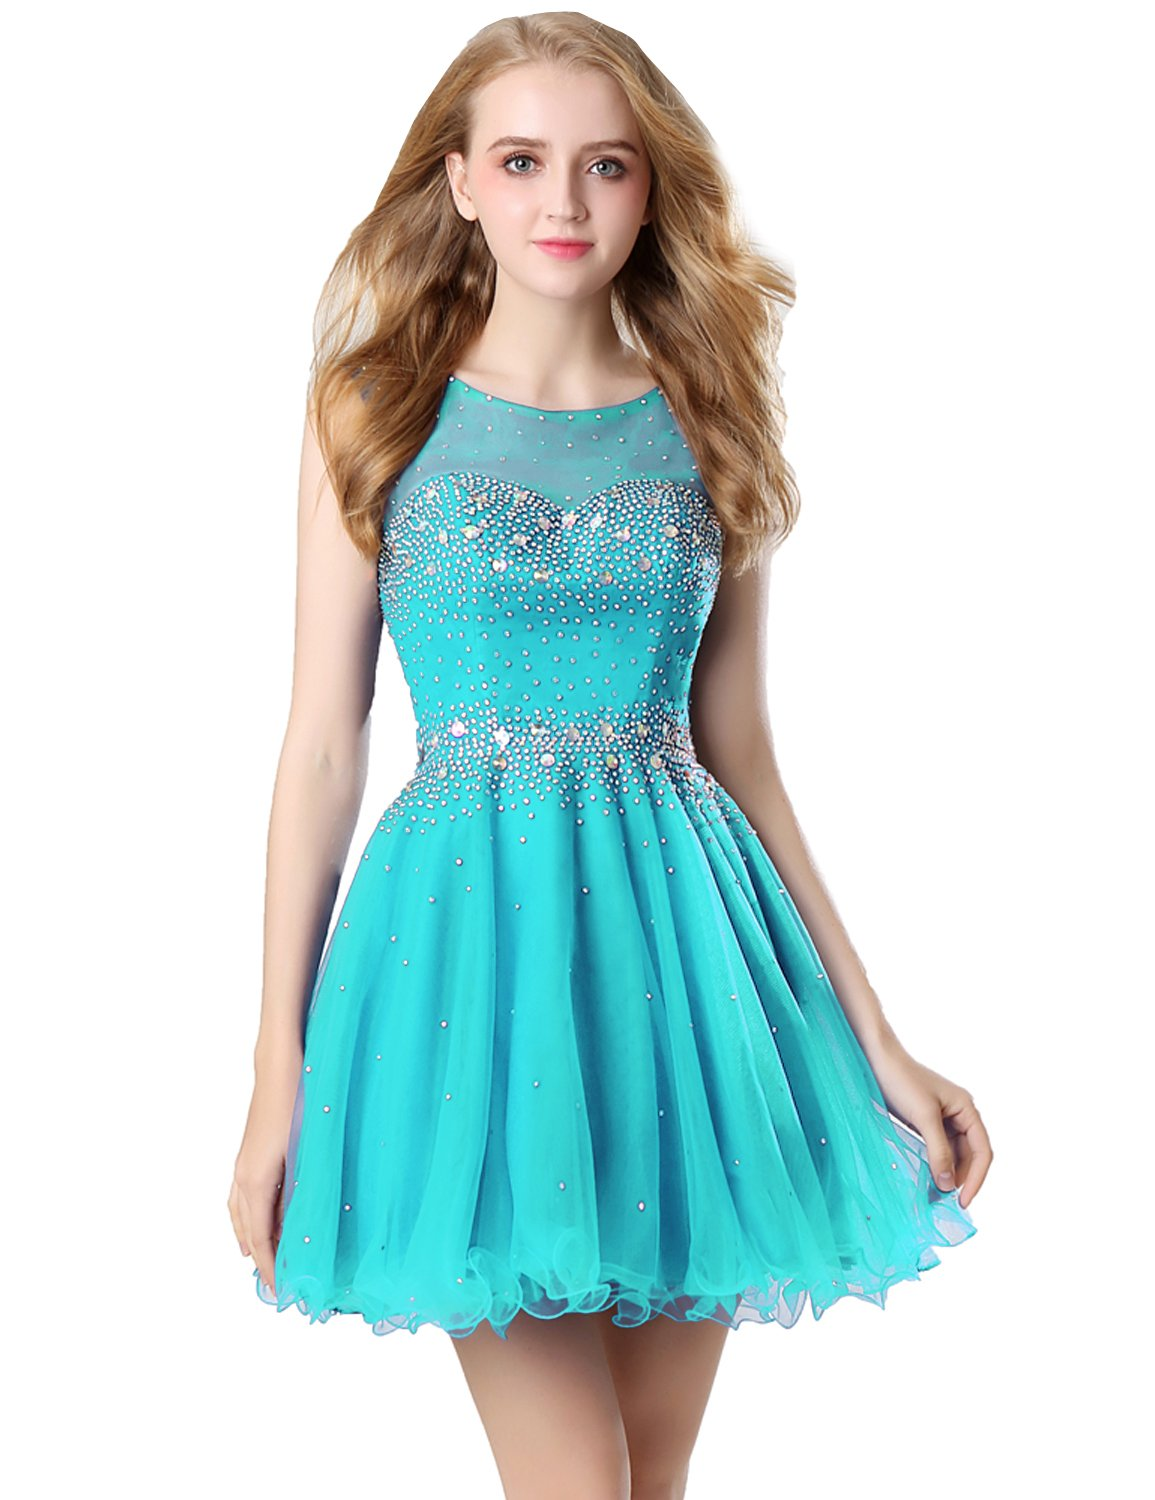 Belle House 2018 Short Tulle Beading Homecoming Dress Prom Gown Turquoise